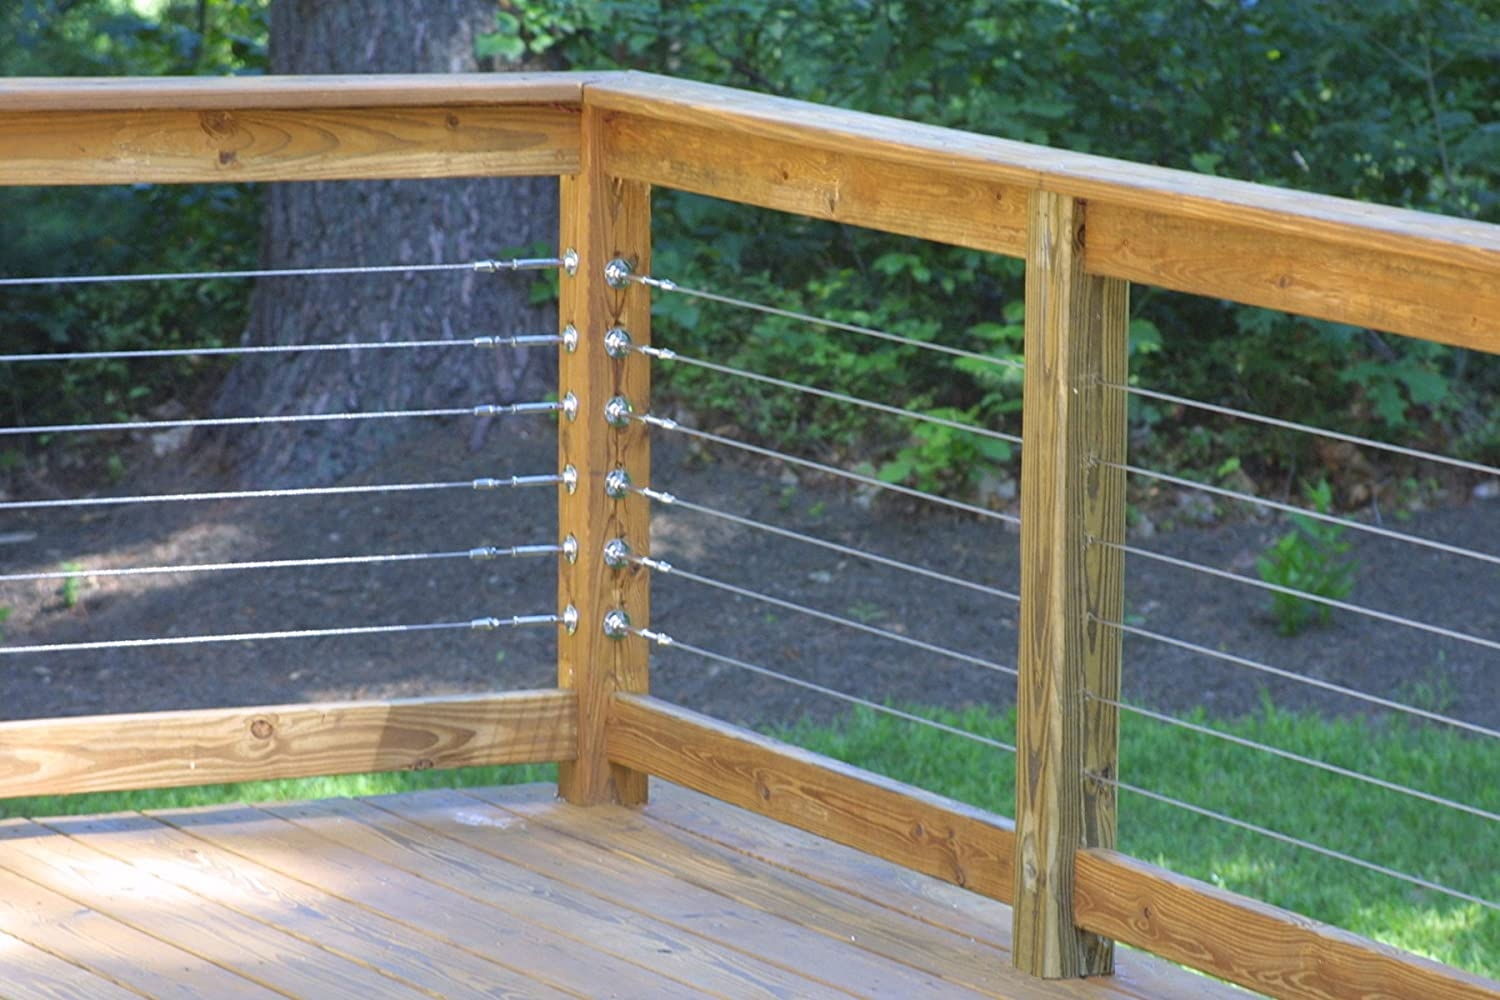 Raileasy Turnbuckle For Cable Railing S0981 0004 Decking   Wood And Wire Stair Railing   Hampton Style   Exterior   Closed Staircase   Horizontal Round Bar   Square Wire